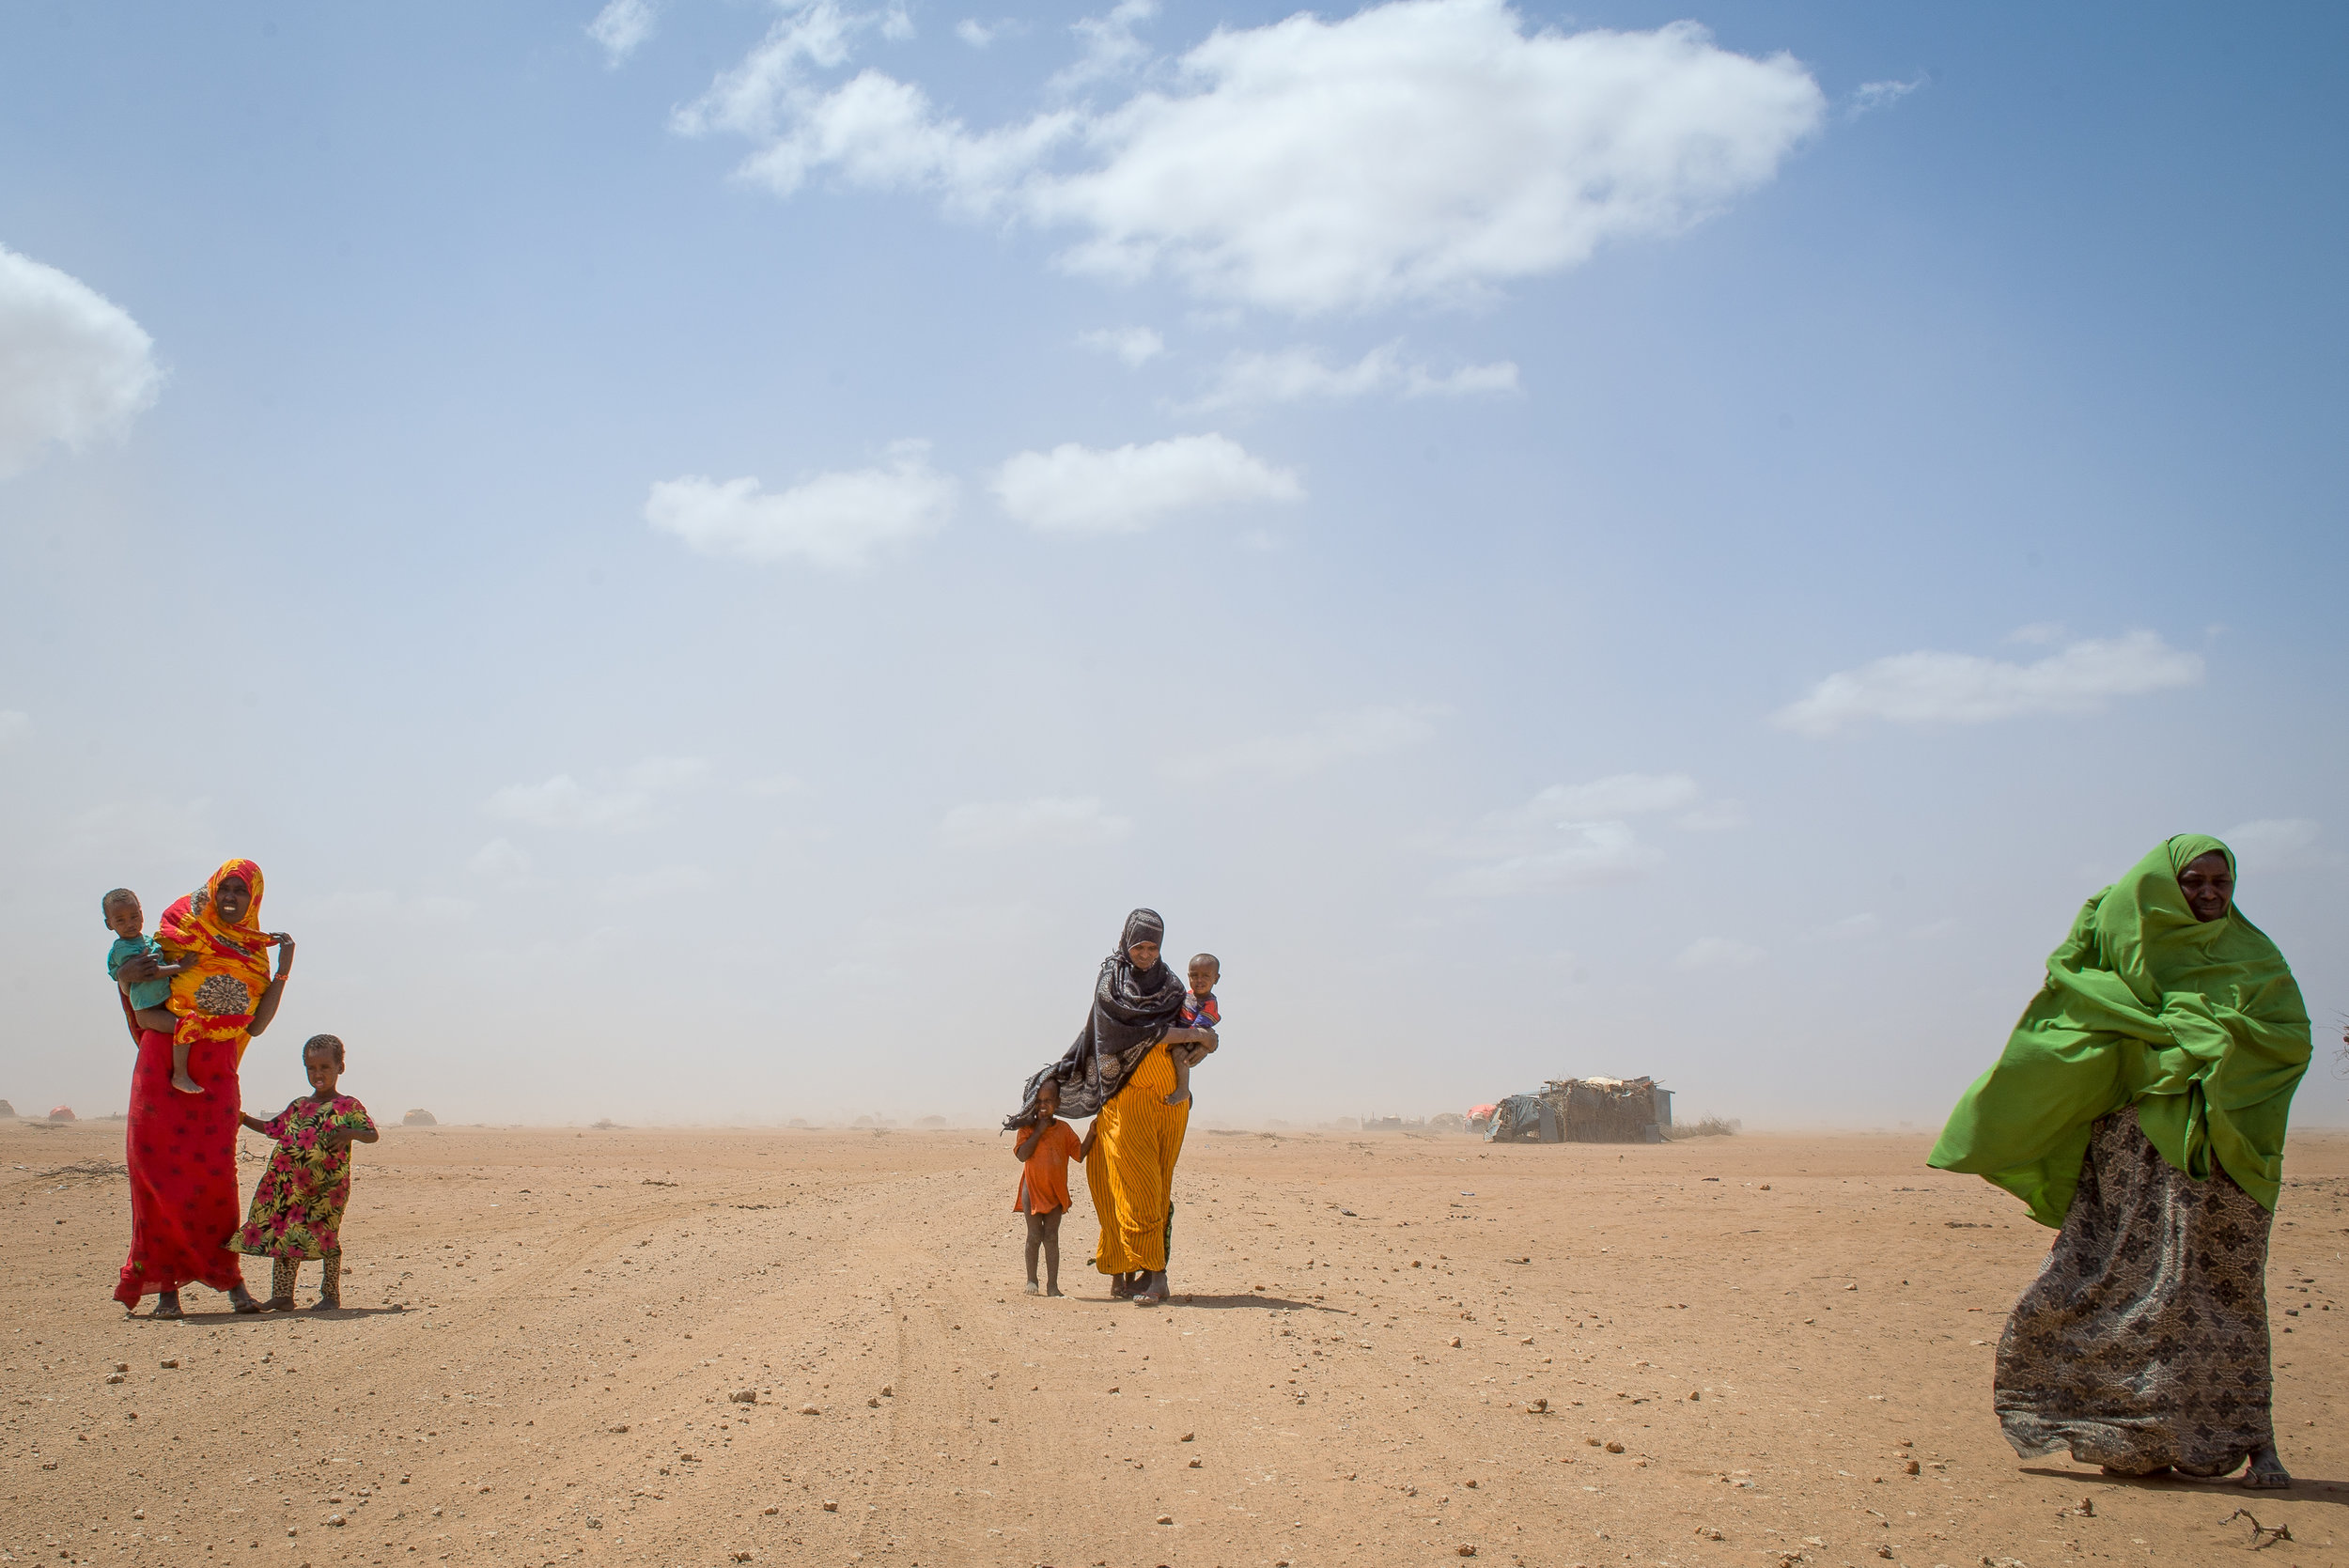 Women carry their children through a sandstorm in a remote village of Wajir County, Kenya.